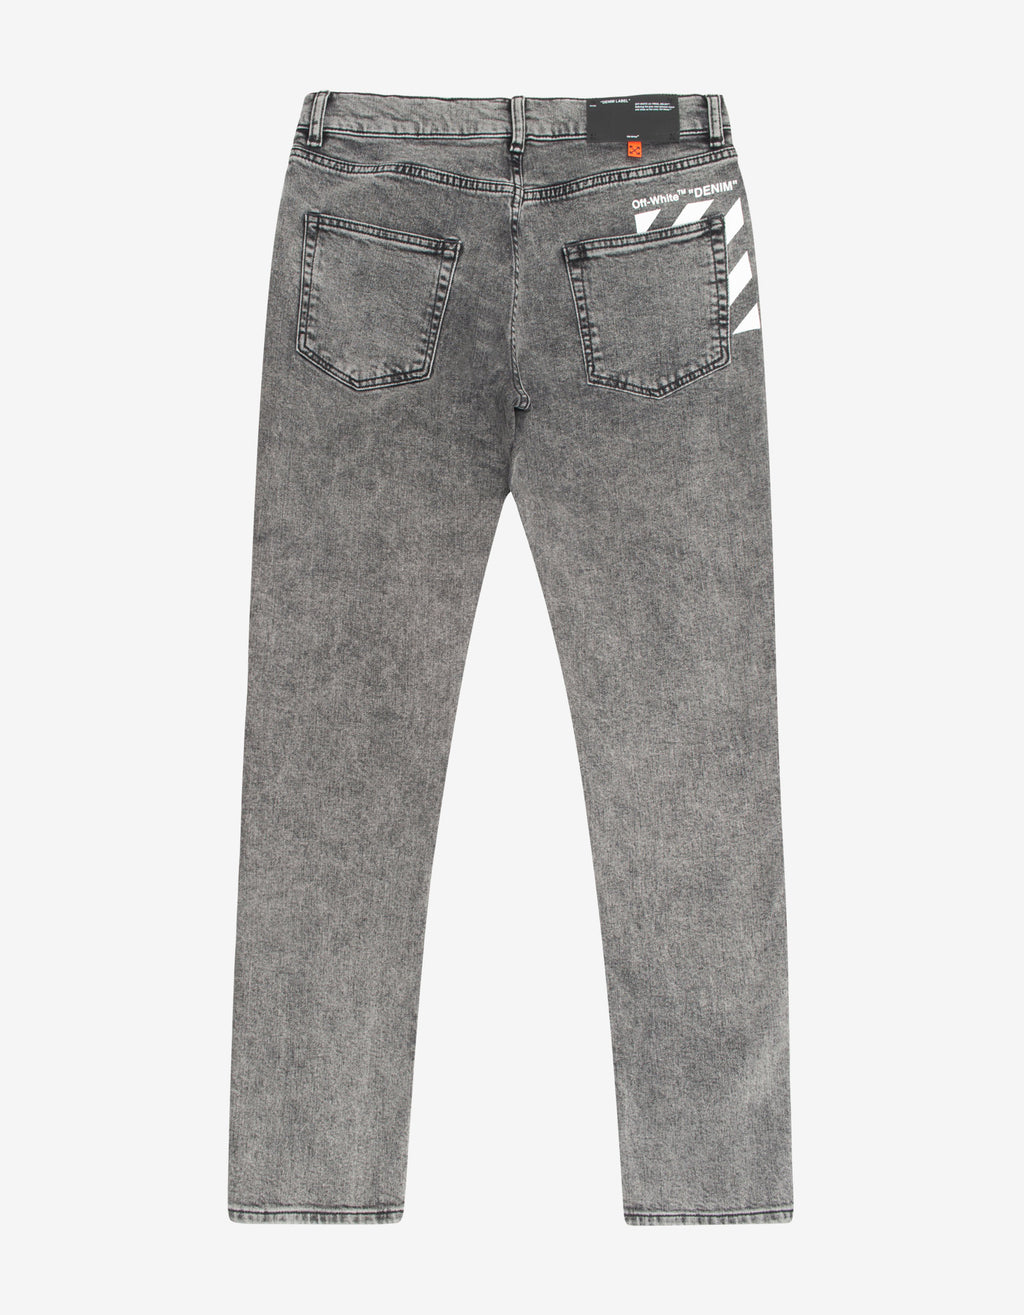 Grey Diagonals Print Skinny Jeans